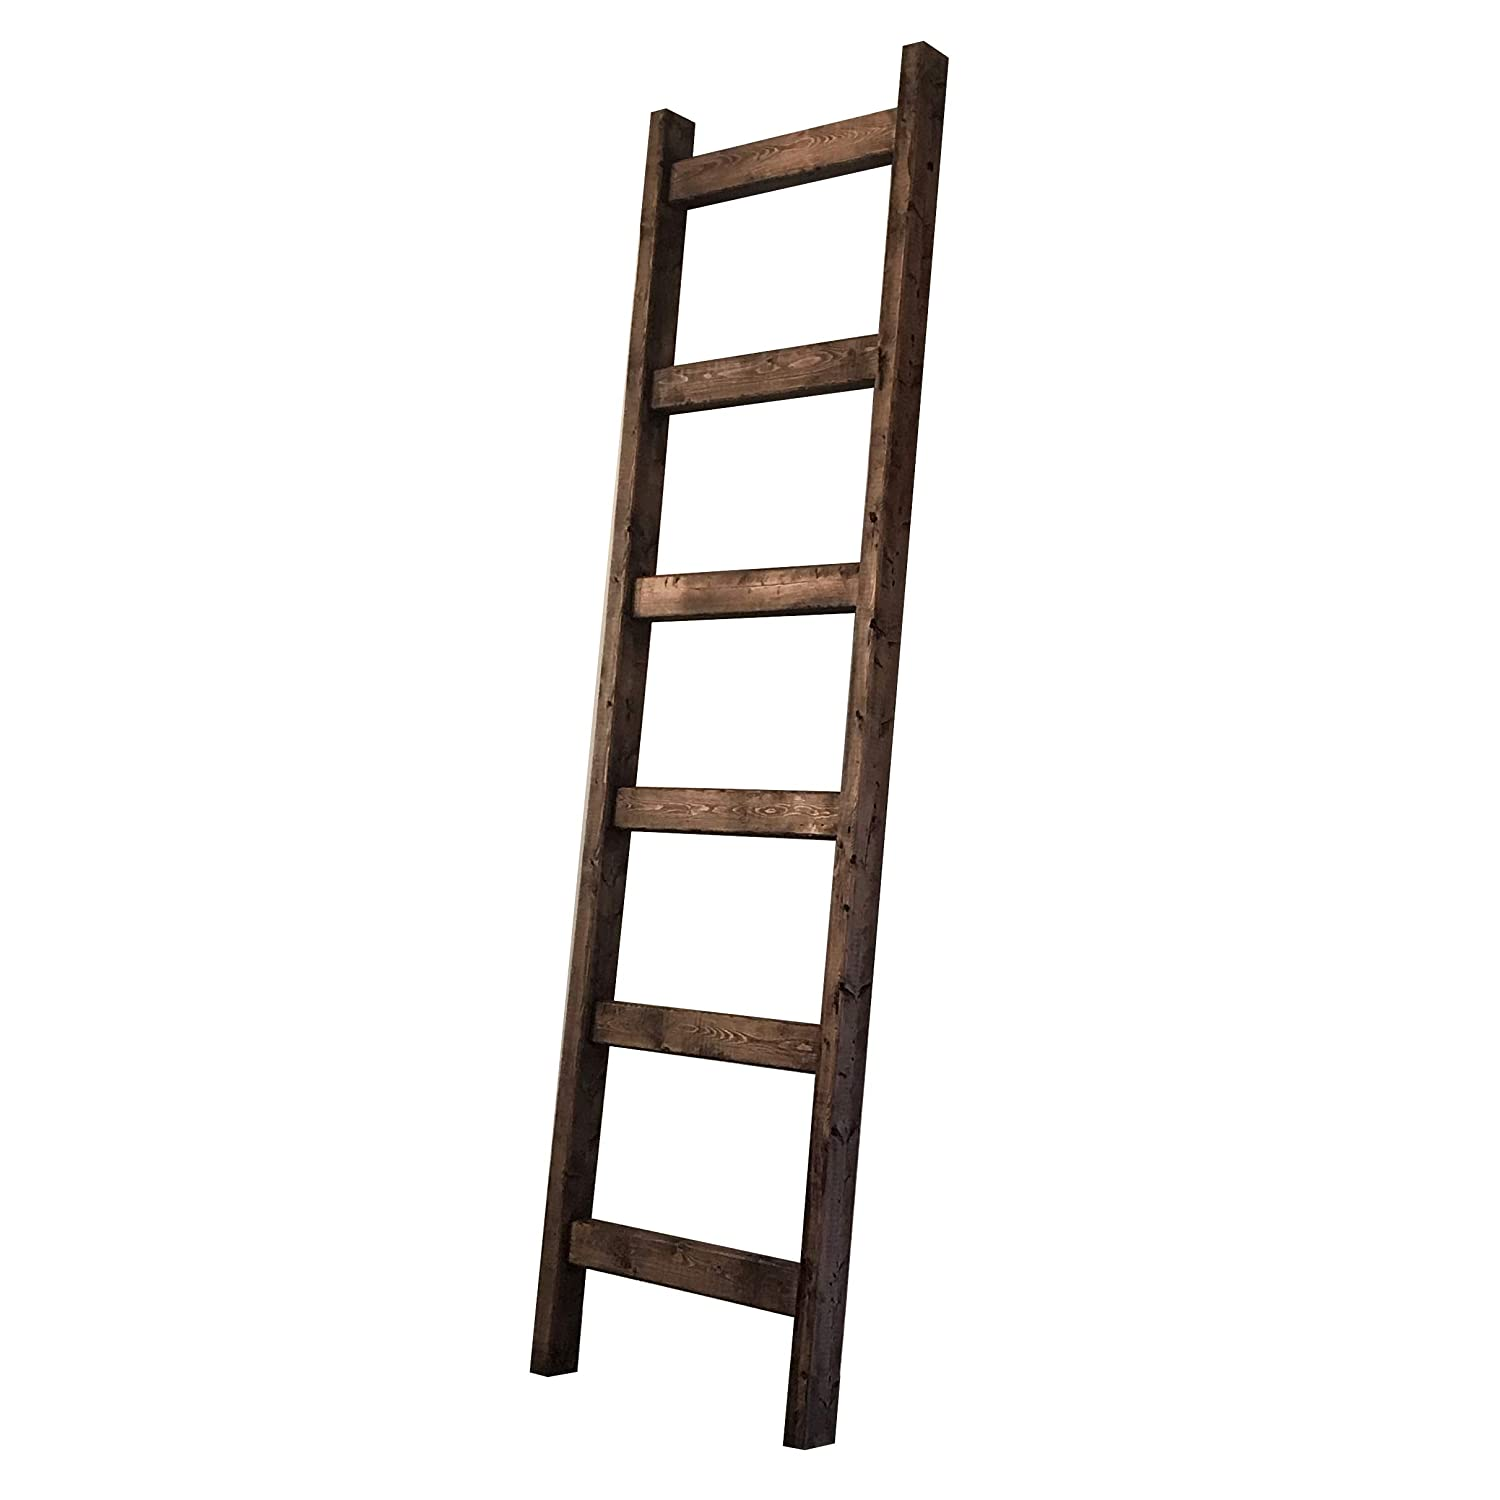 6 Foot Rustic Blanket Ladder - Smooth Finish/No Blanket Snags